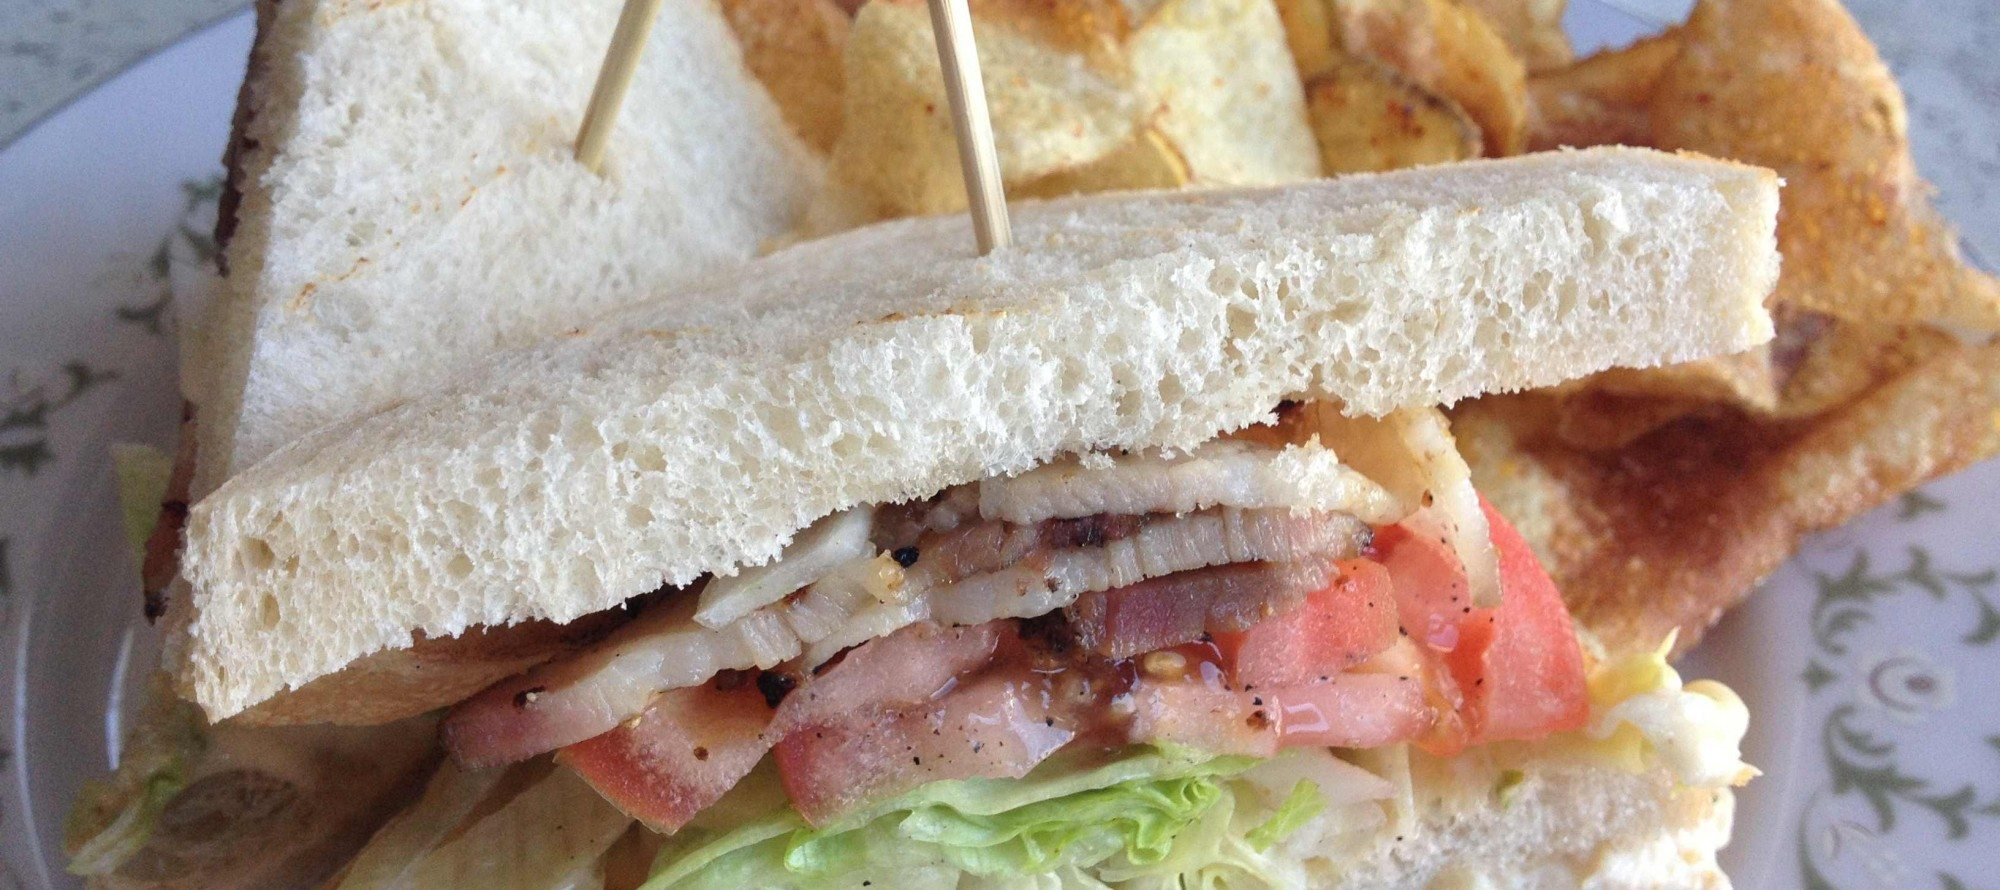 WEEKLY LUNCH PICK: A delightful club sandwich at Hintonburg Public House (shame about the price)